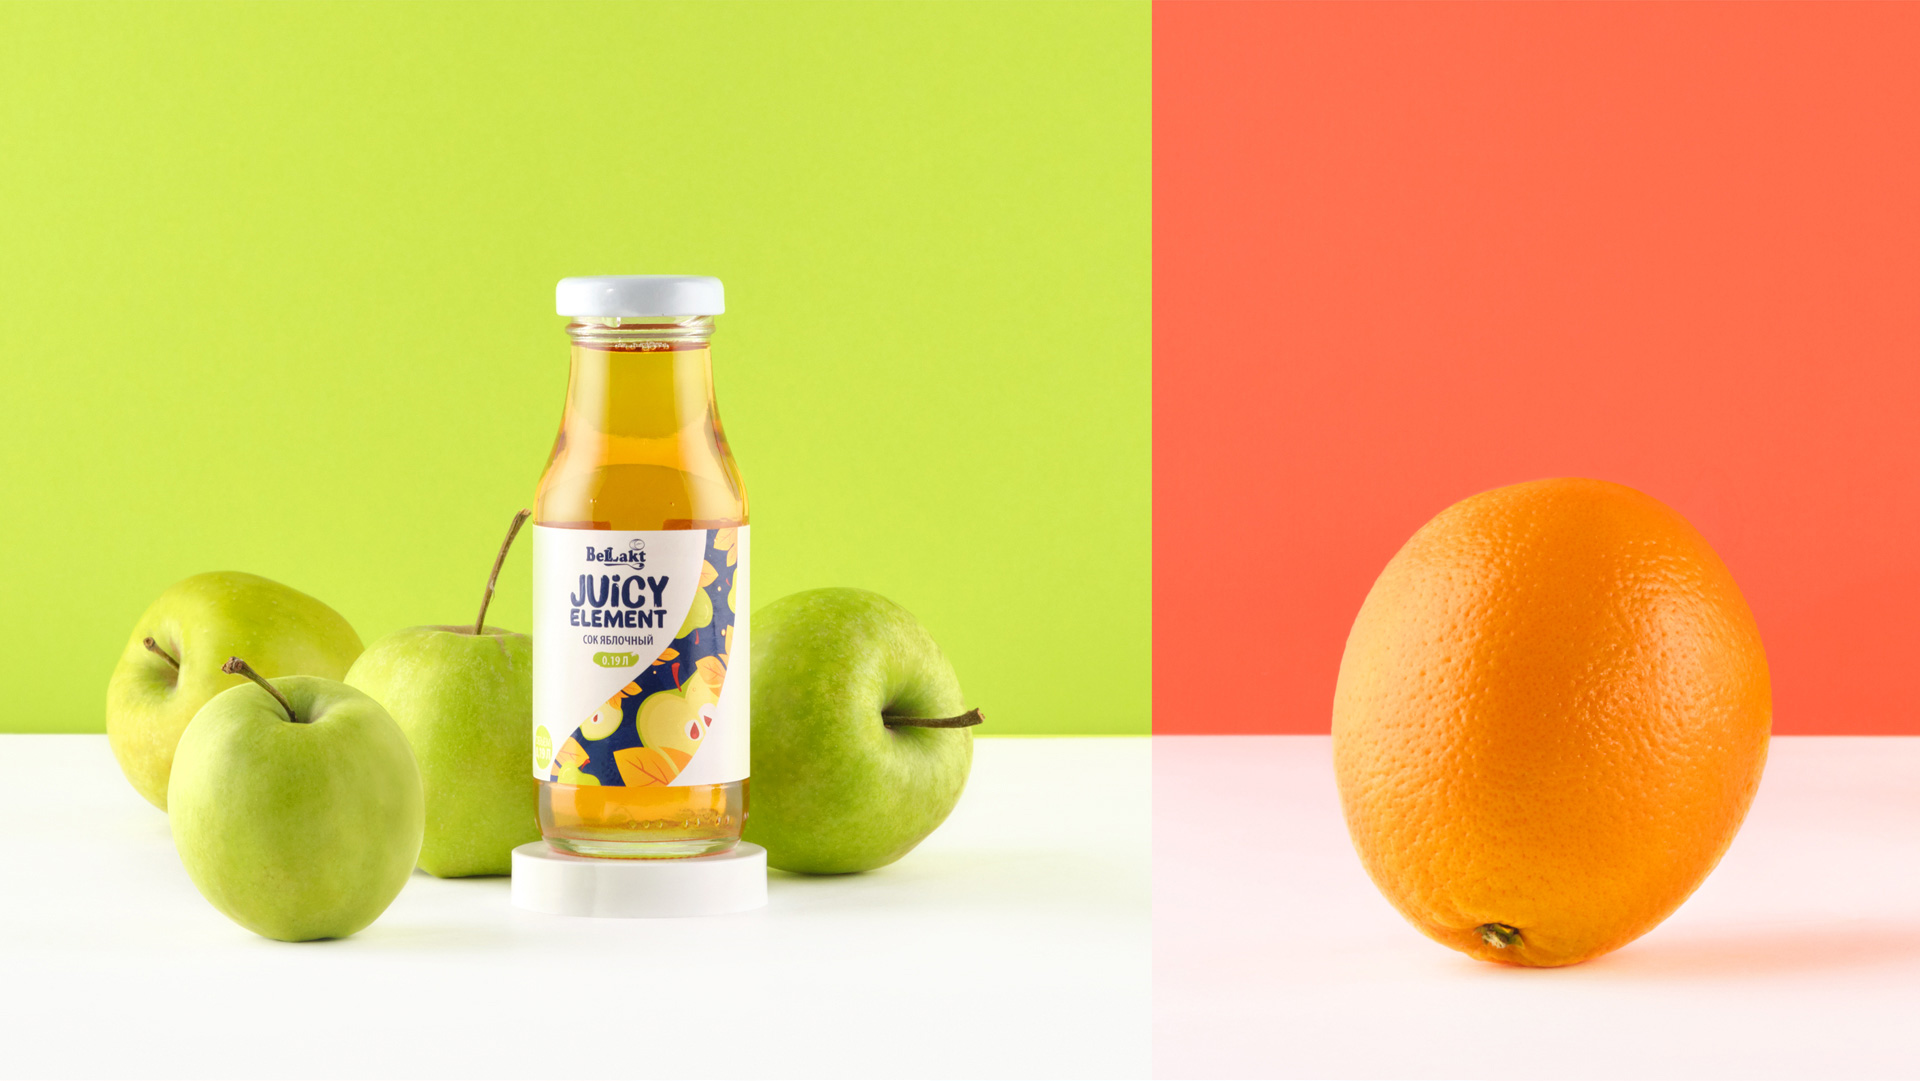 Дизайн этикетки, Дизайн упаковки, Беллакт Столица, PG Brand Reforming Company, Juicy Element, Cок